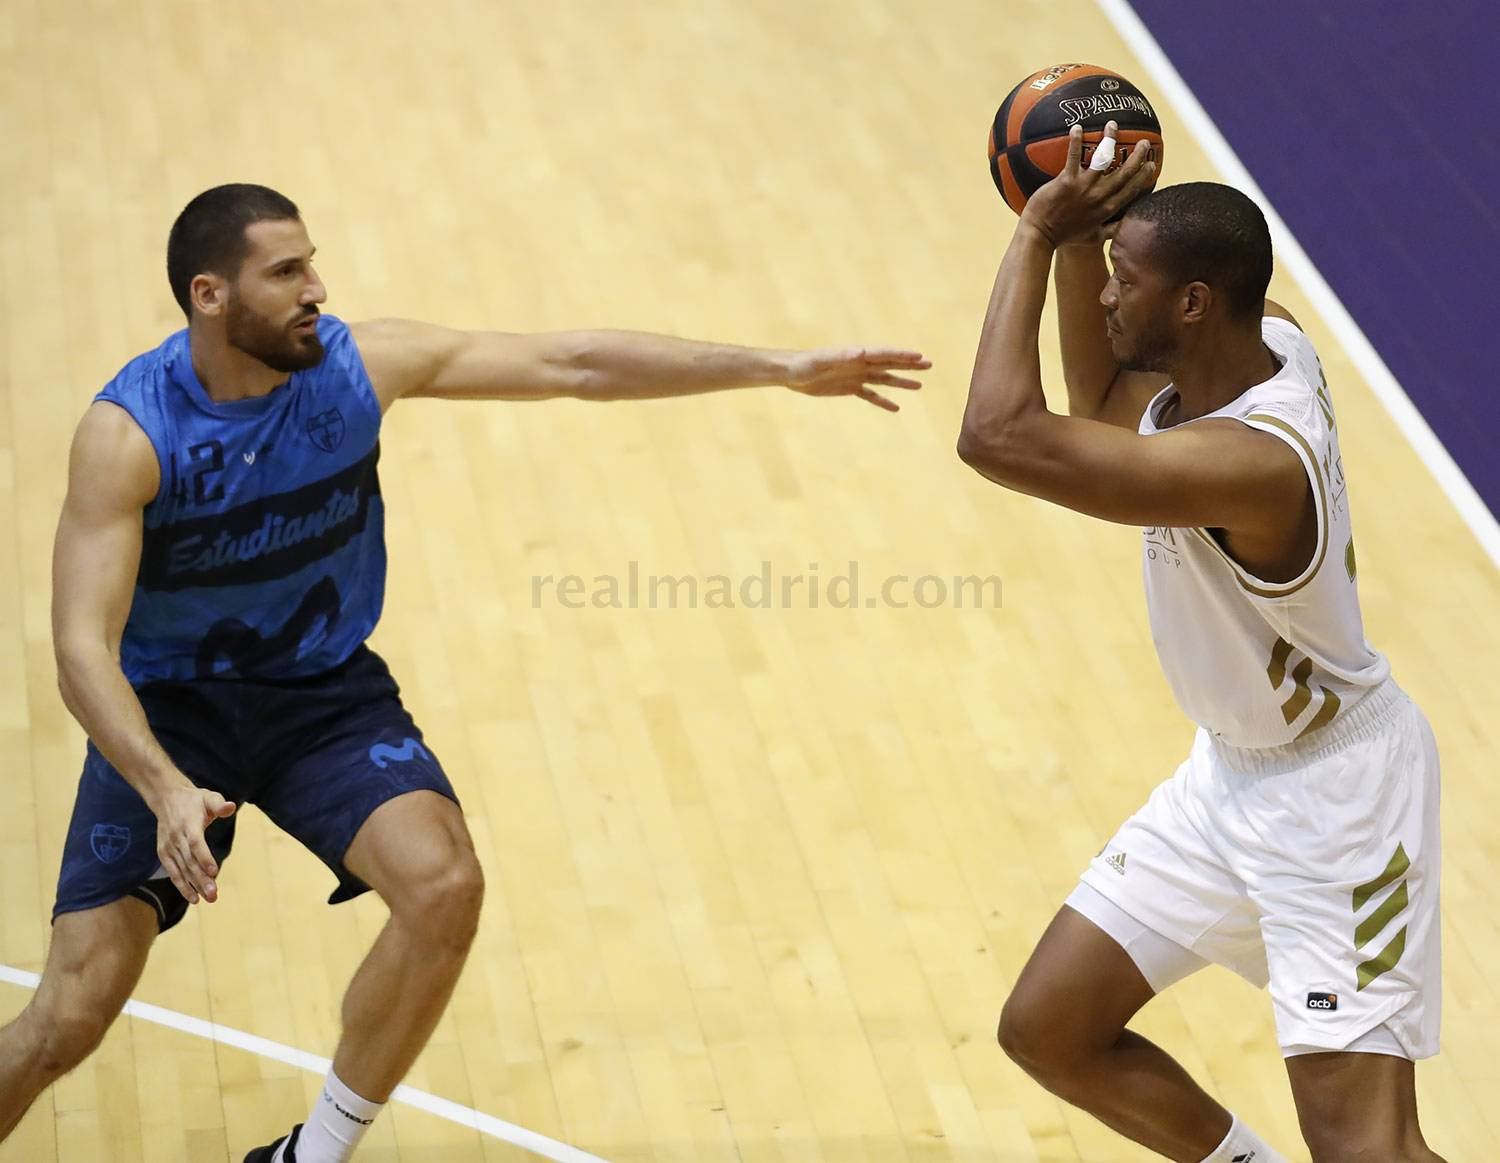 Real Madrid - Real Madrid-Movistar Estudiantes - 29-08-2020